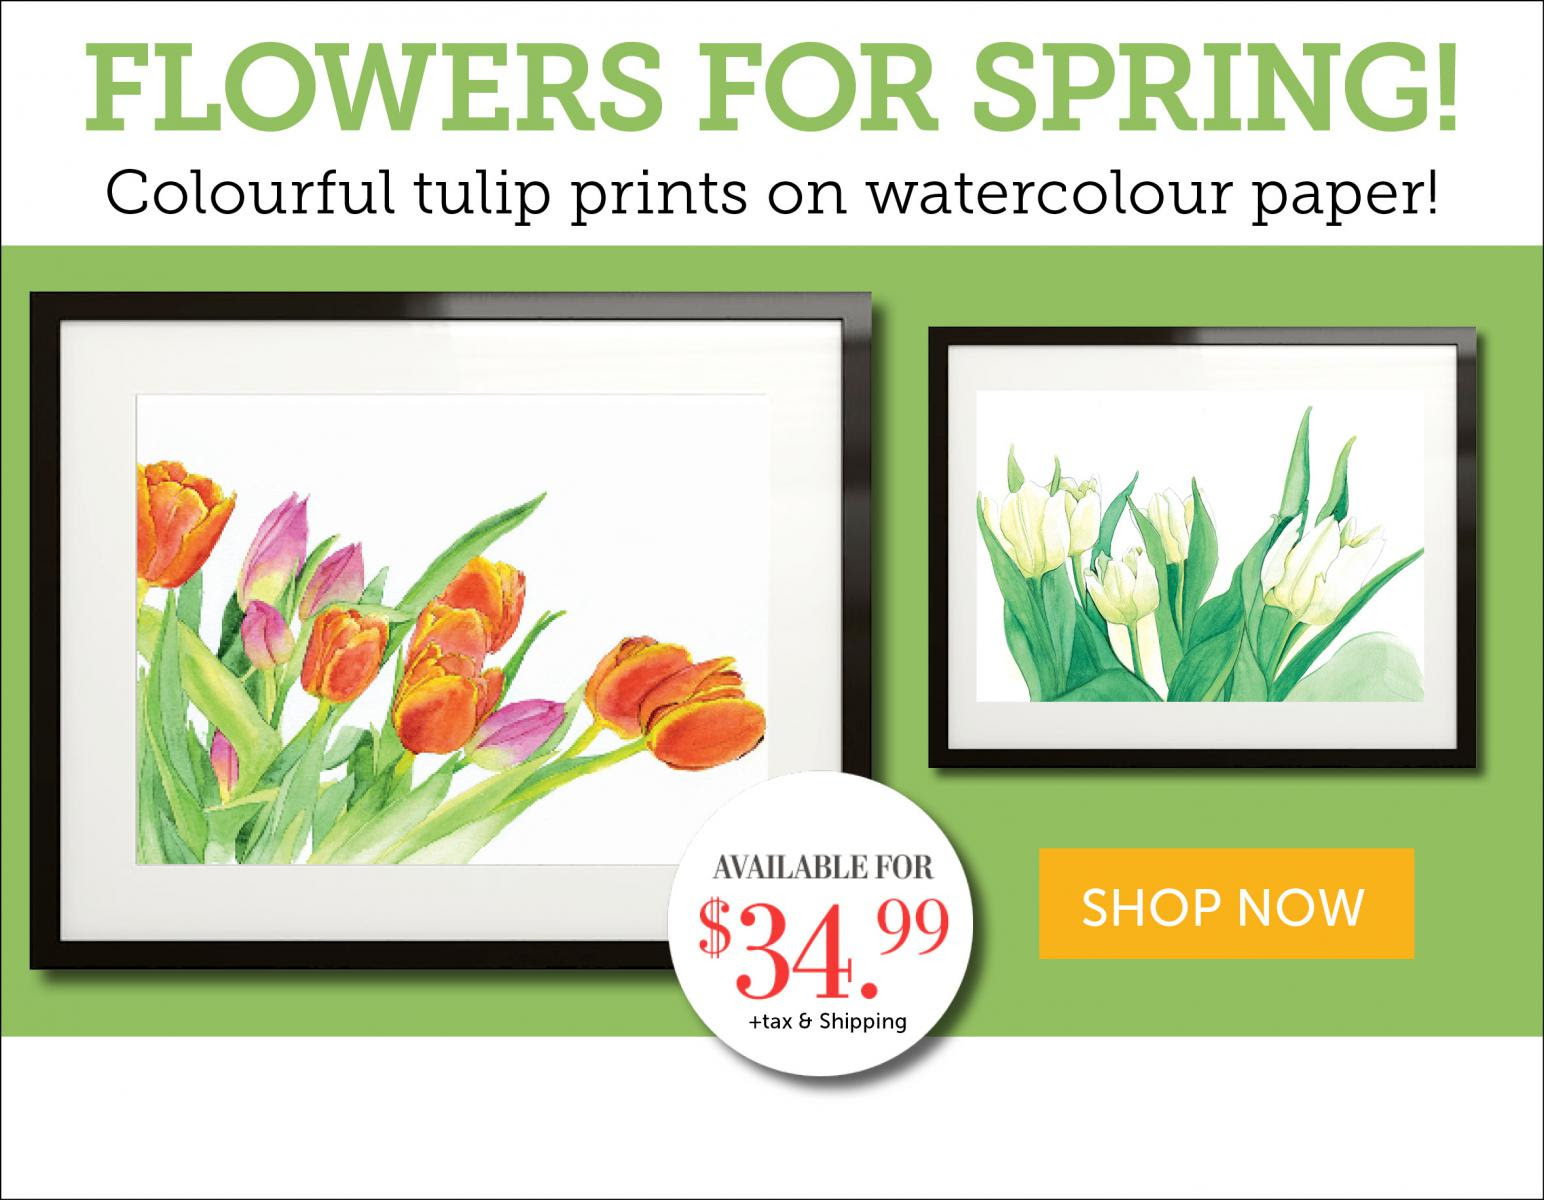 Tulip flower prints for spring!